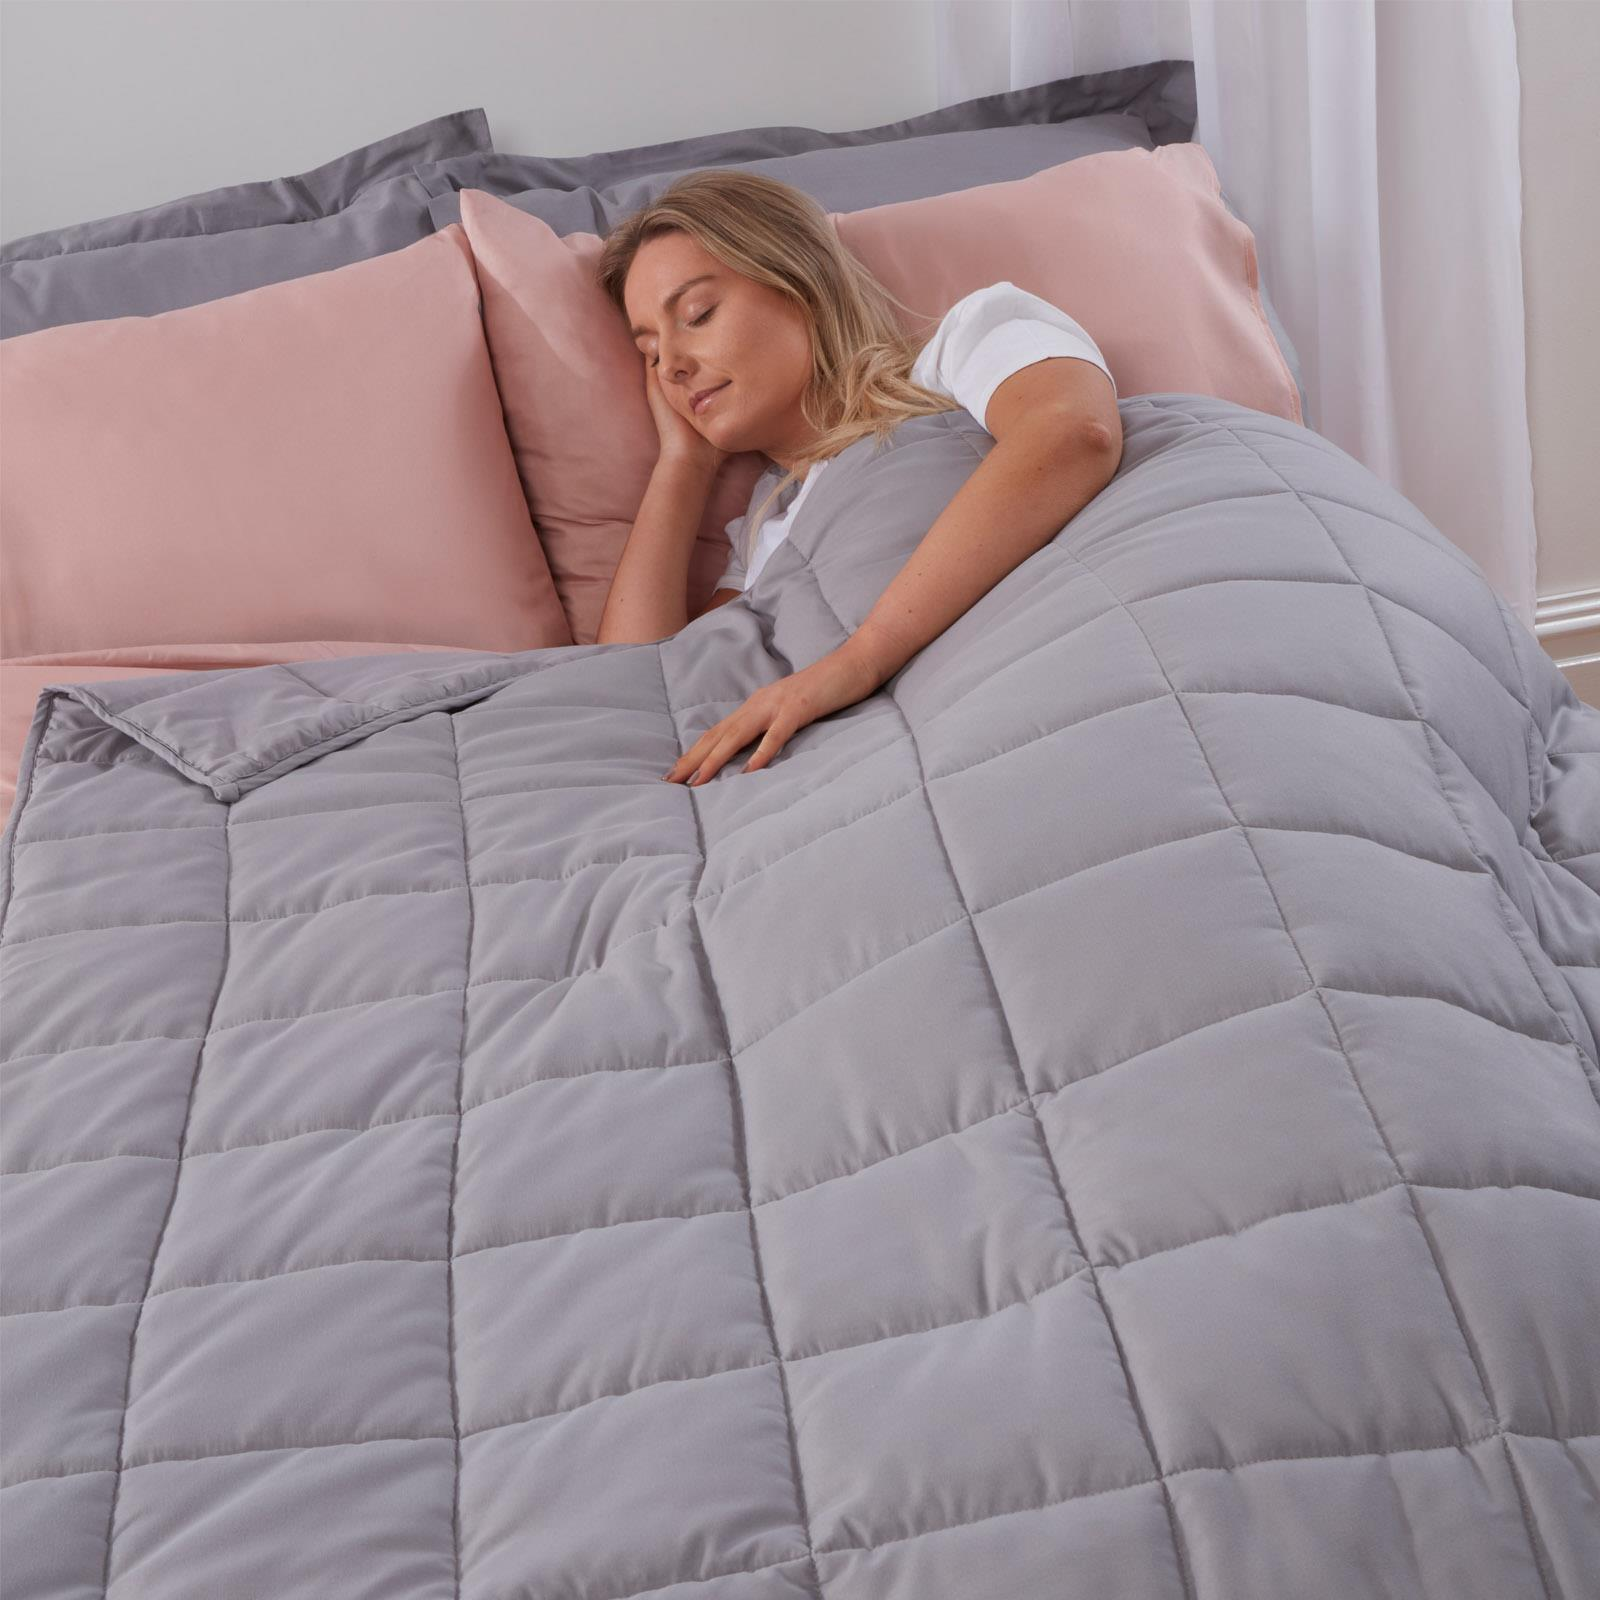 thumbnail 9 - Brentfords Weighted Blanket Sensory Sleep Therapy Anxiety Kids/Adults Blush Grey